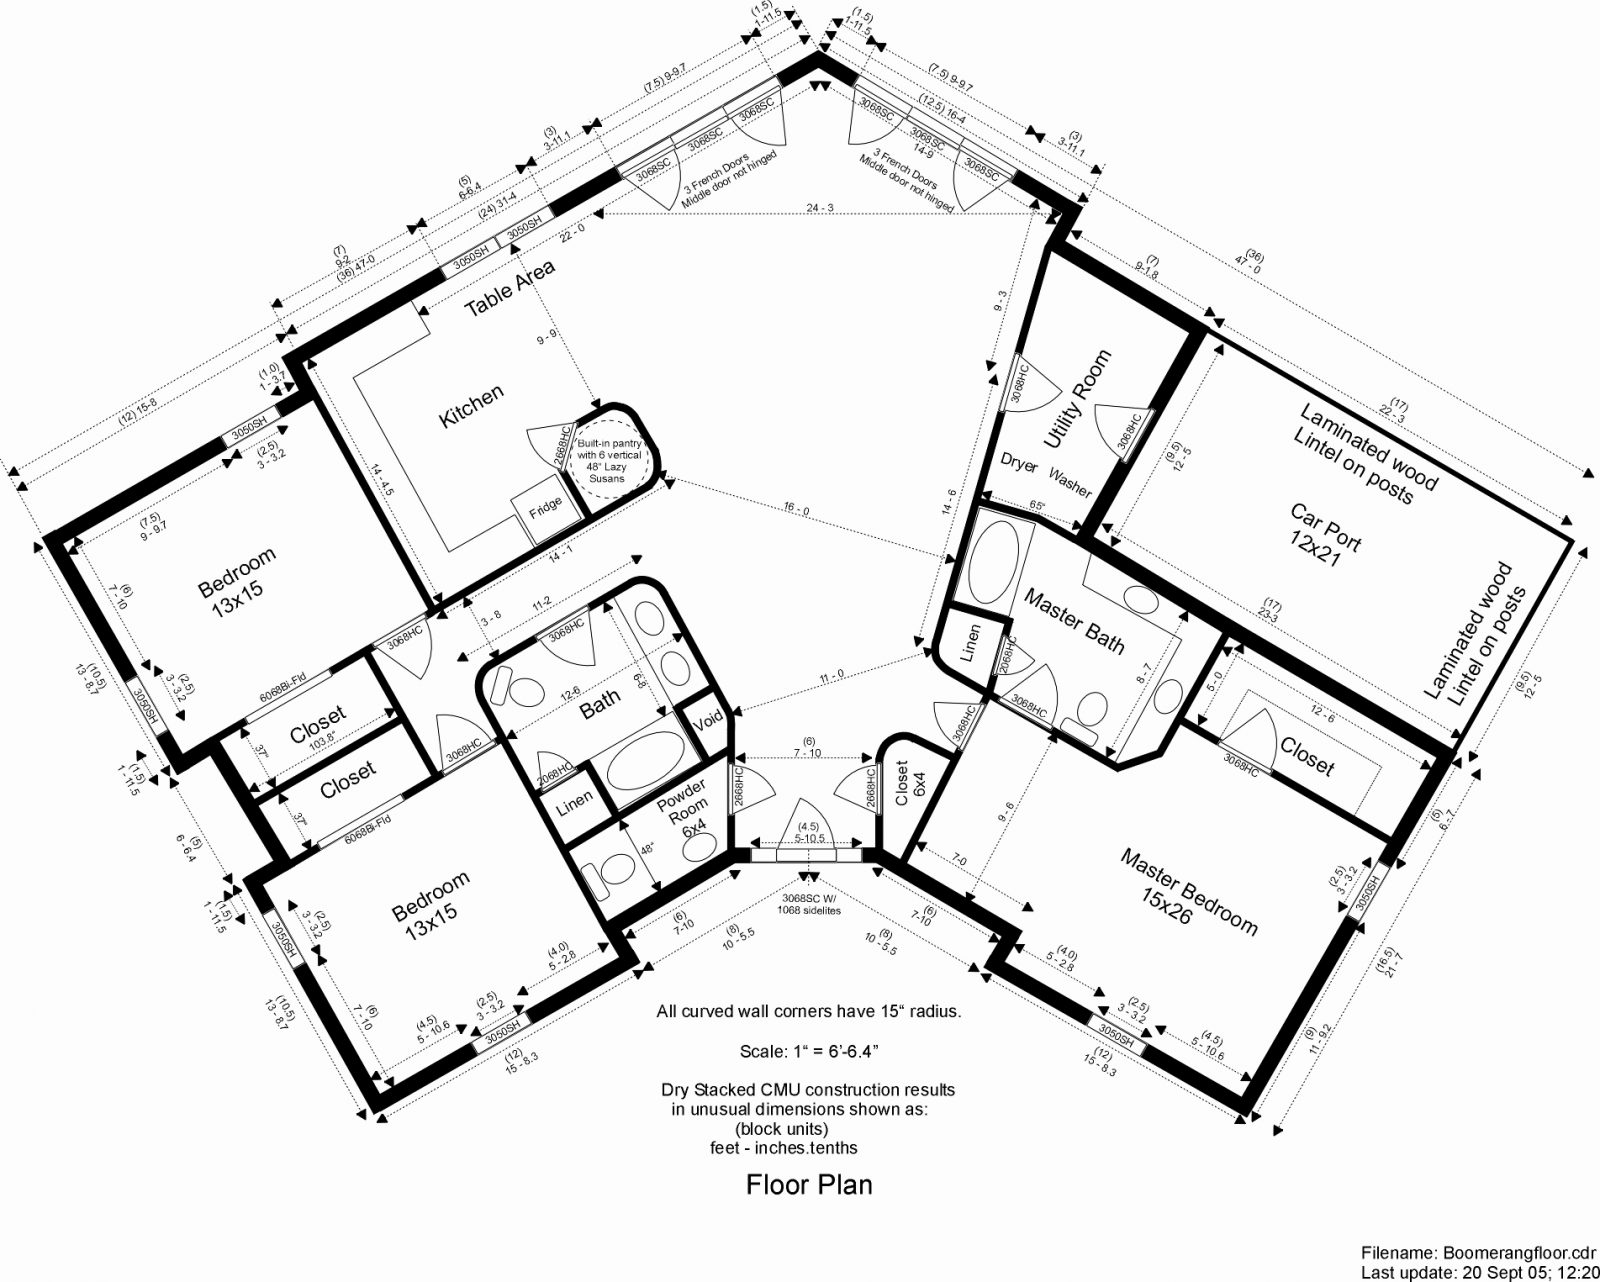 Building Drawing Plan Elevation Section Pdf at GetDrawings